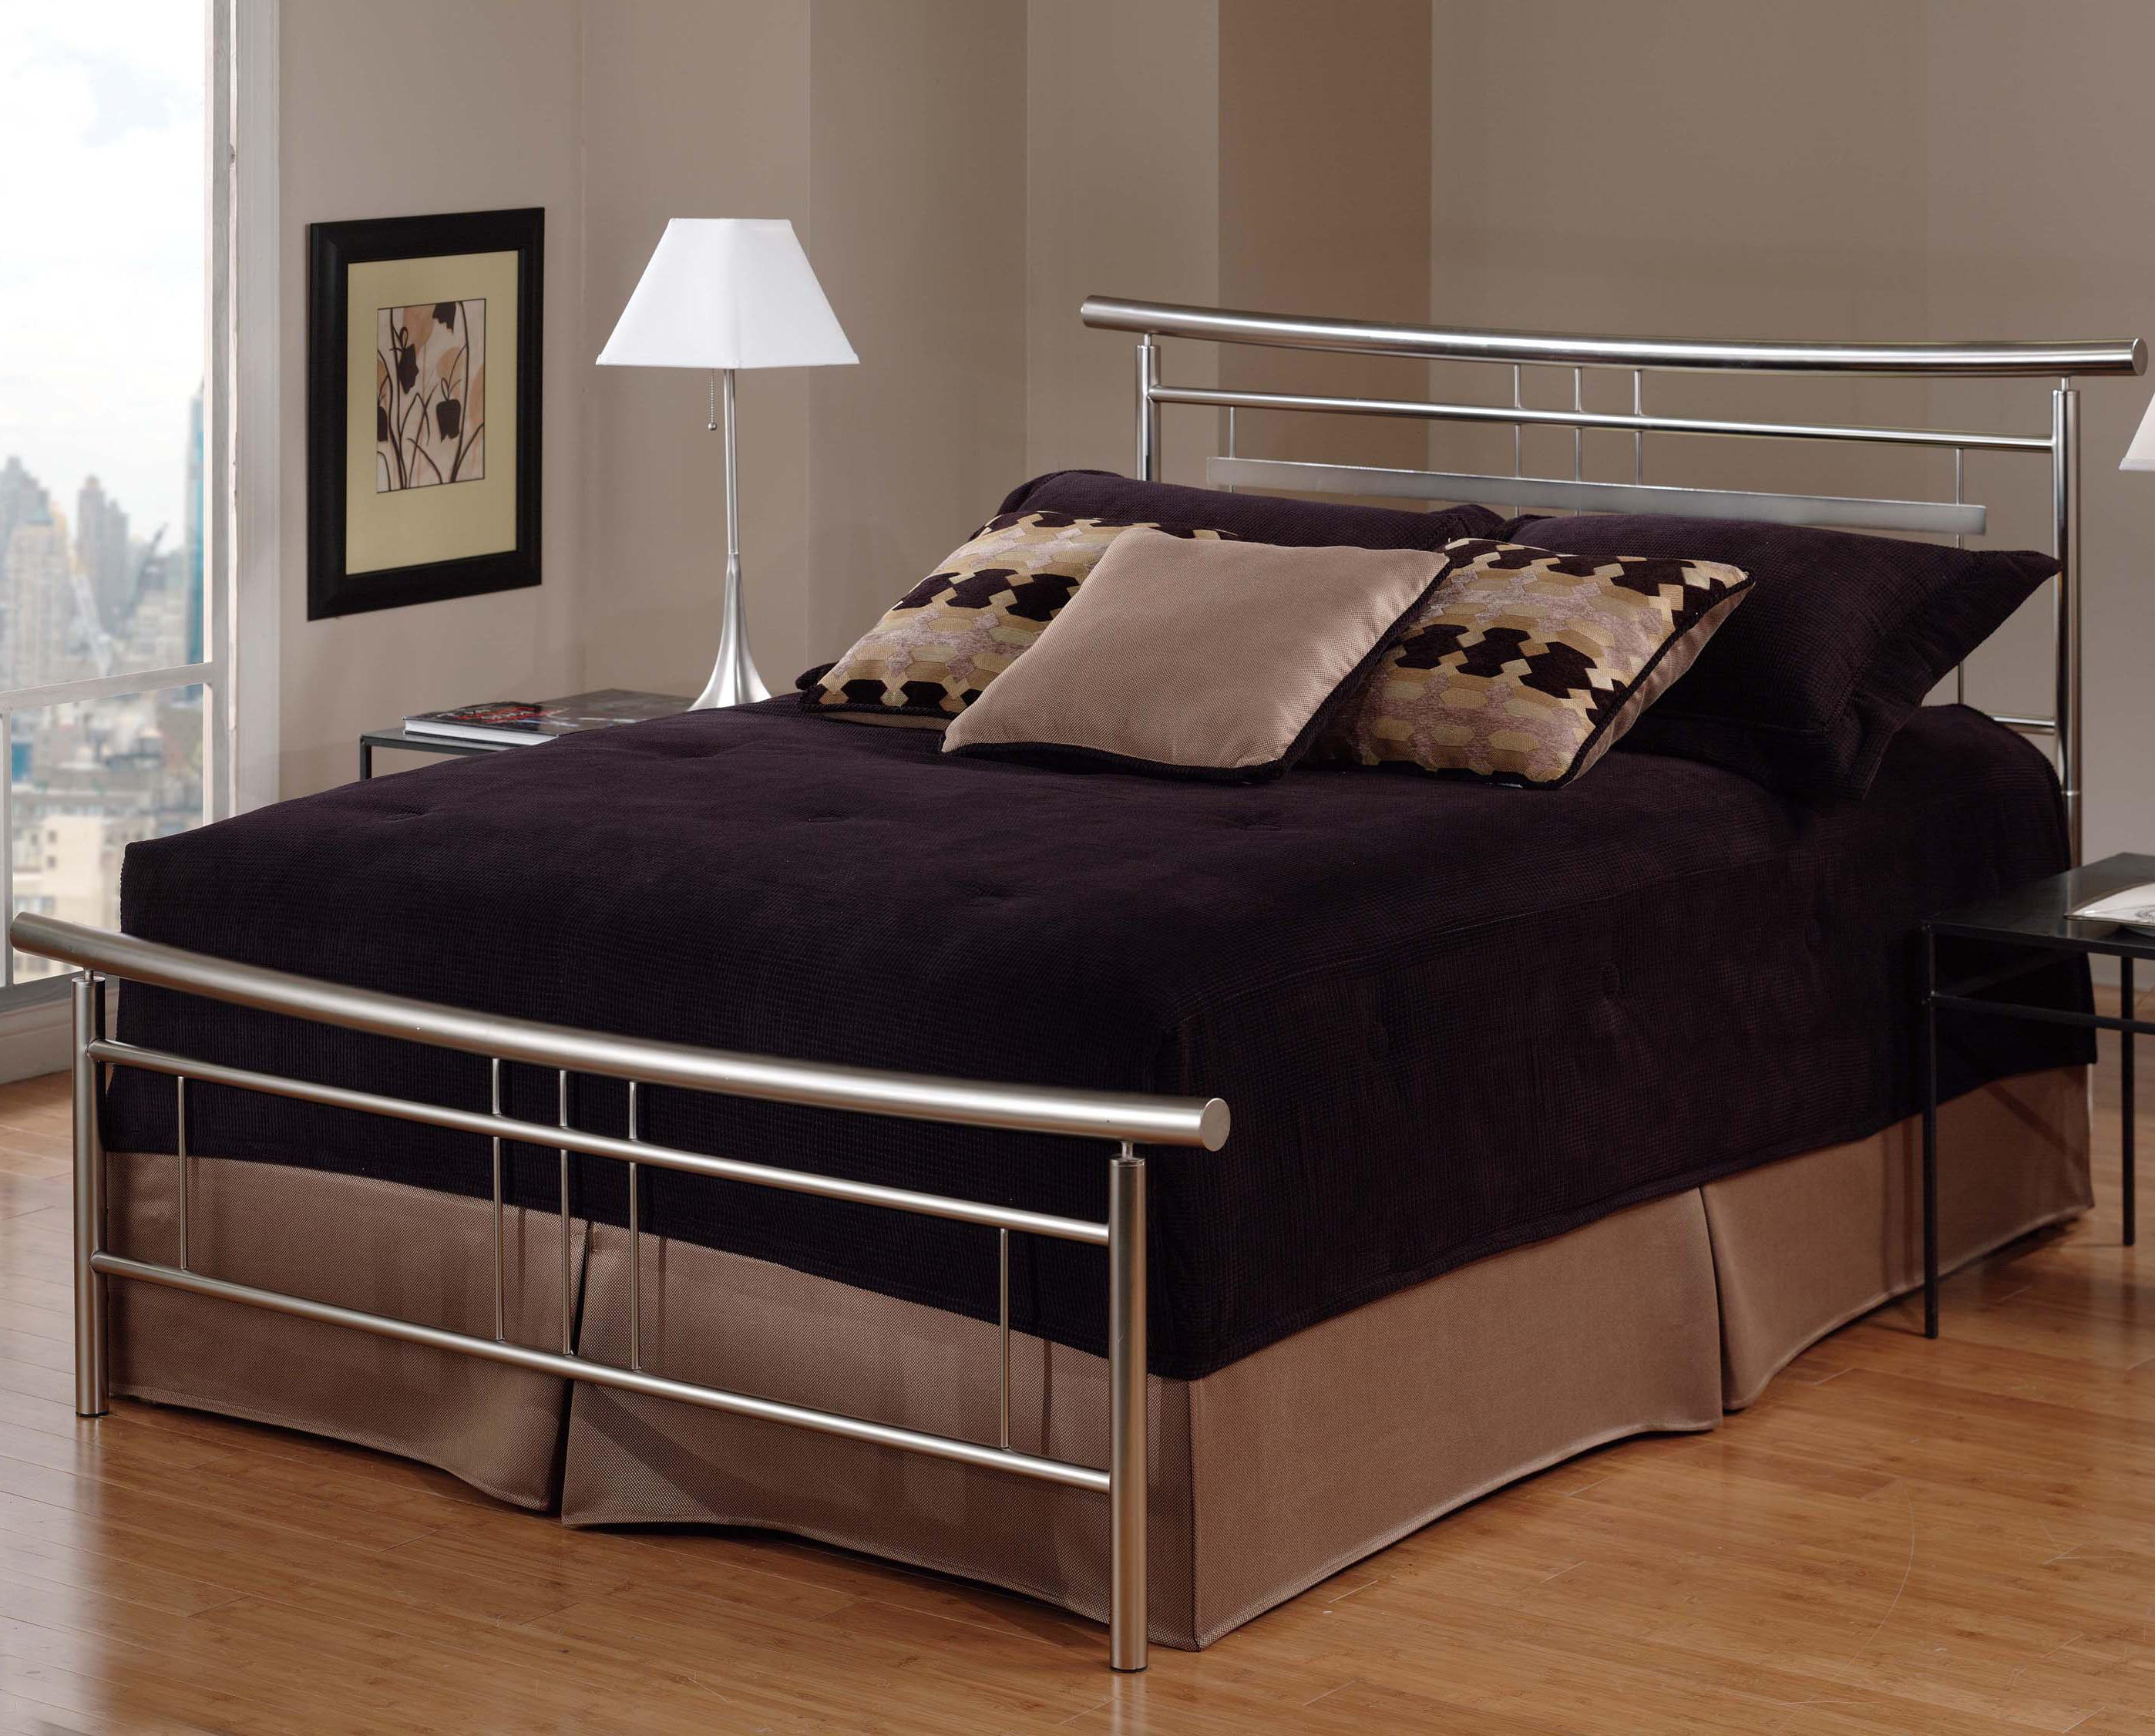 Hillsdale Metal Beds Queen Soho Bed - Item Number: 1331BQR